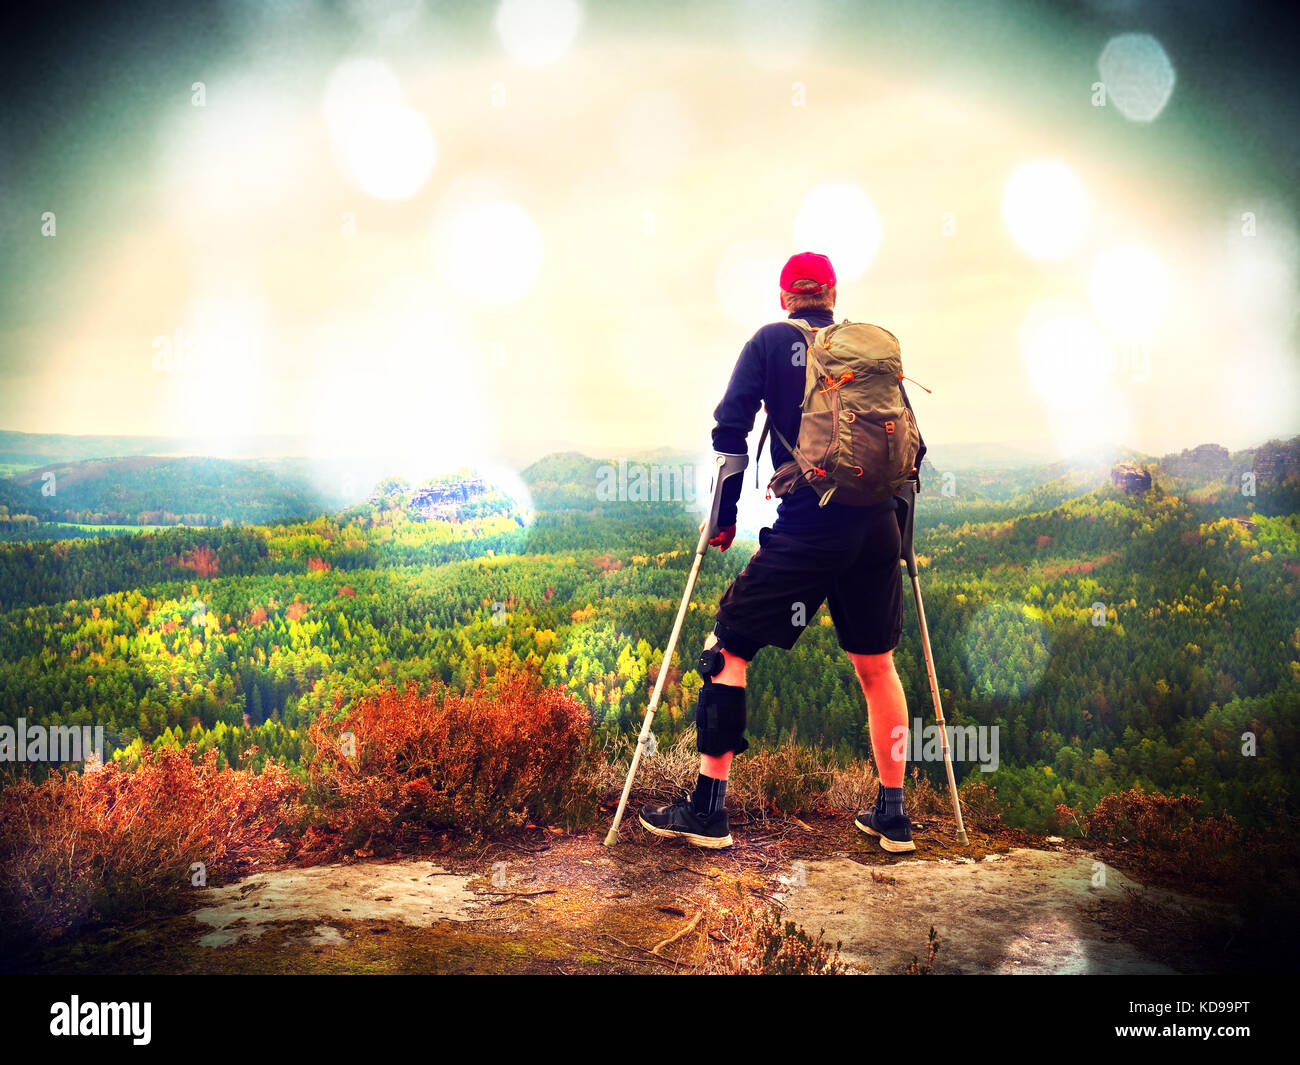 Lens defect. Man hiker Wearing Supportive Leg Brace and gainst the cruthes. Natural forest park in background - Stock Image